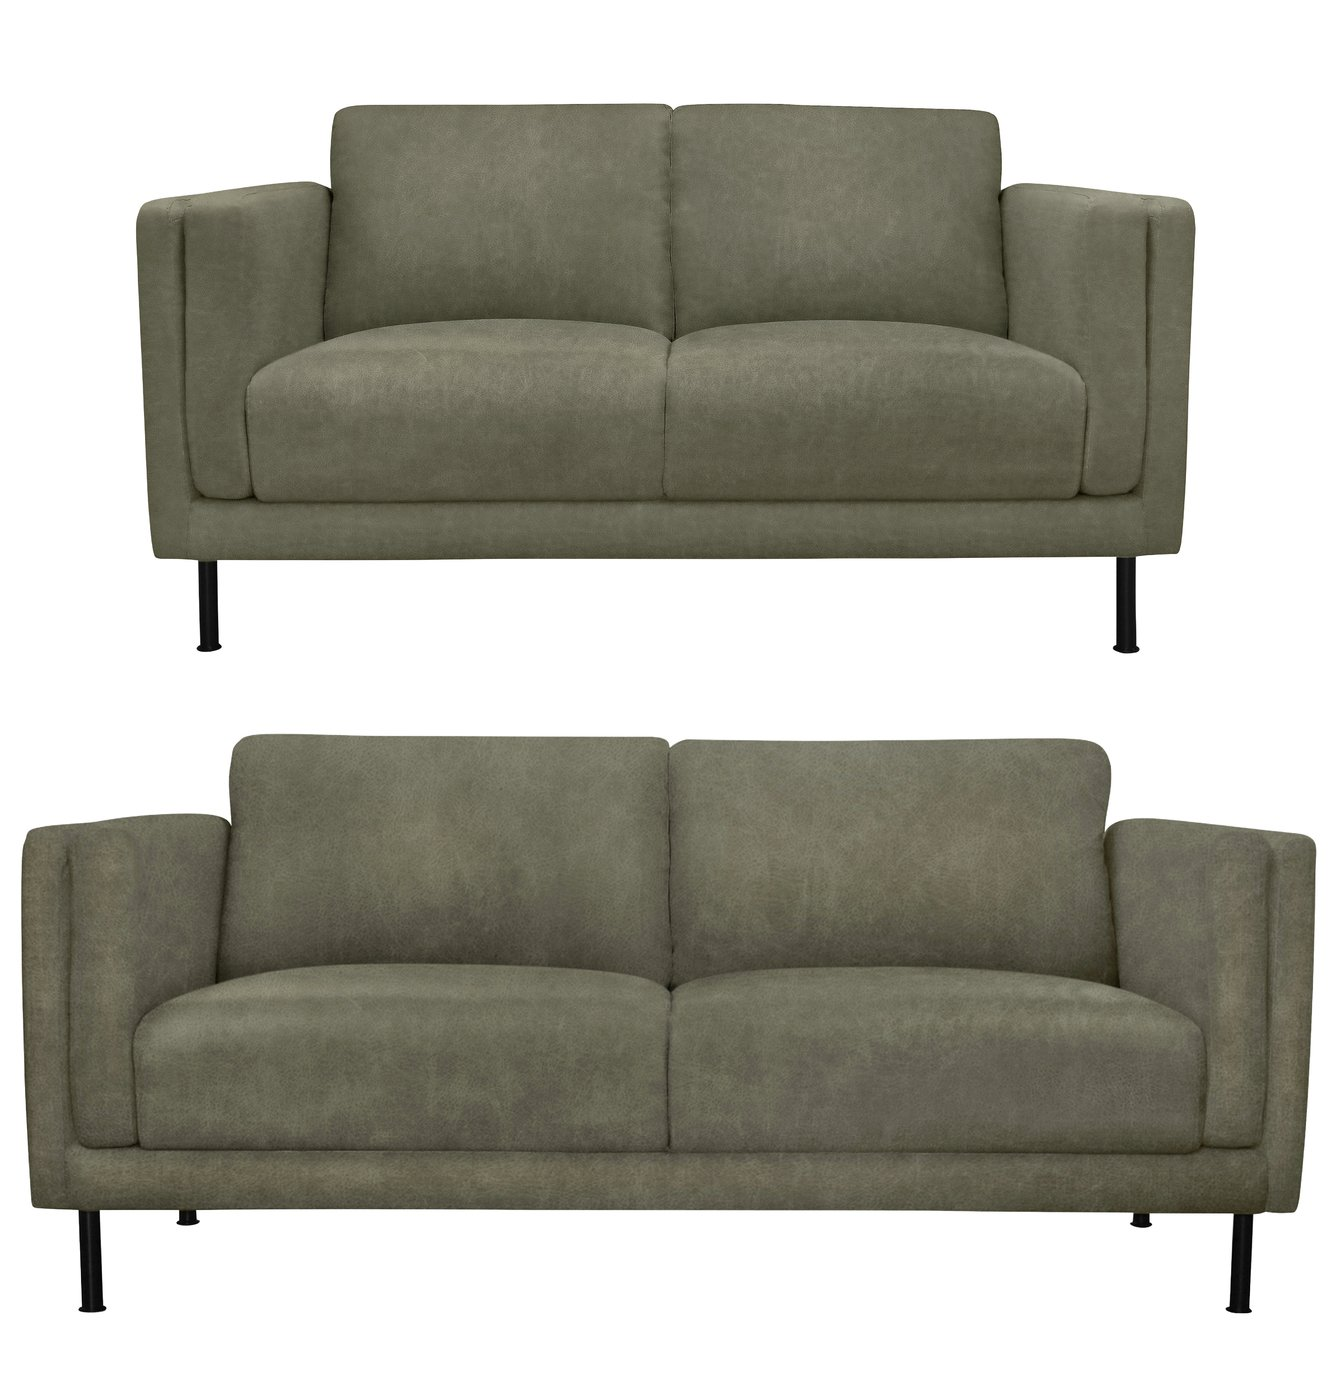 Argos Home Hugo Faux Leather 2 Seater & 3 Seater Sofa - Grey